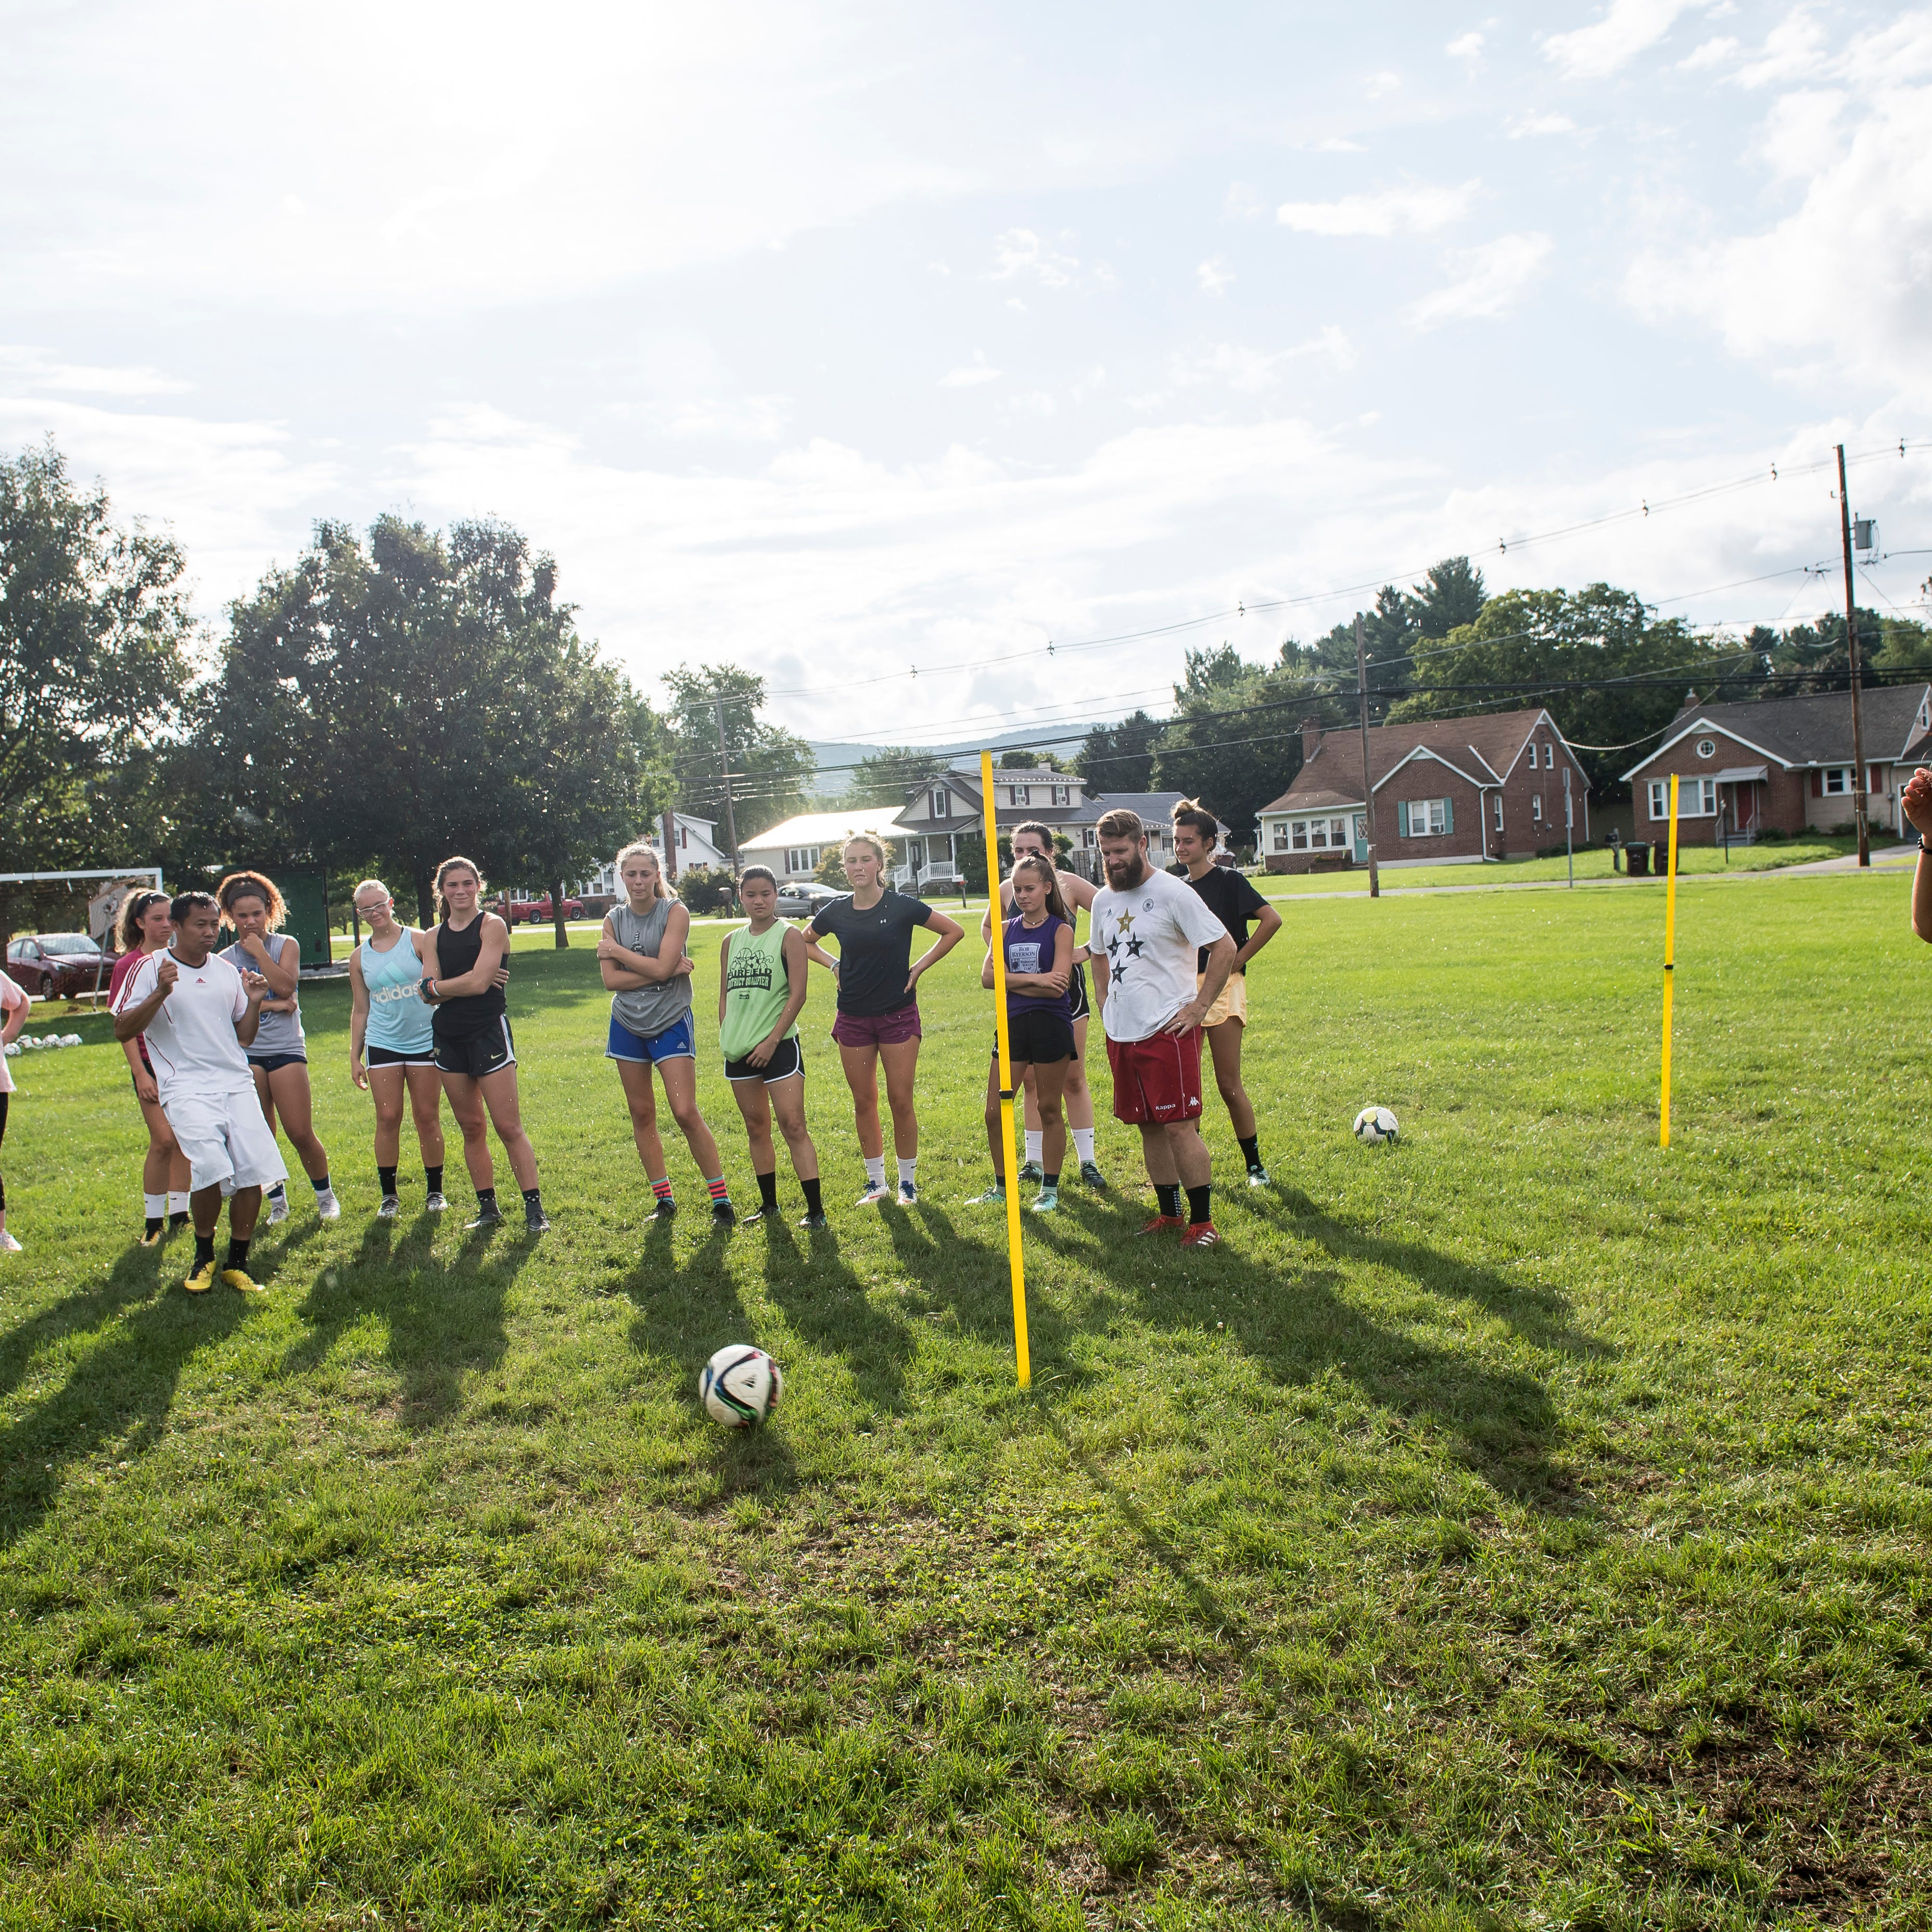 YAIAA girls' soccer preview: Can Fairfield find state success again?